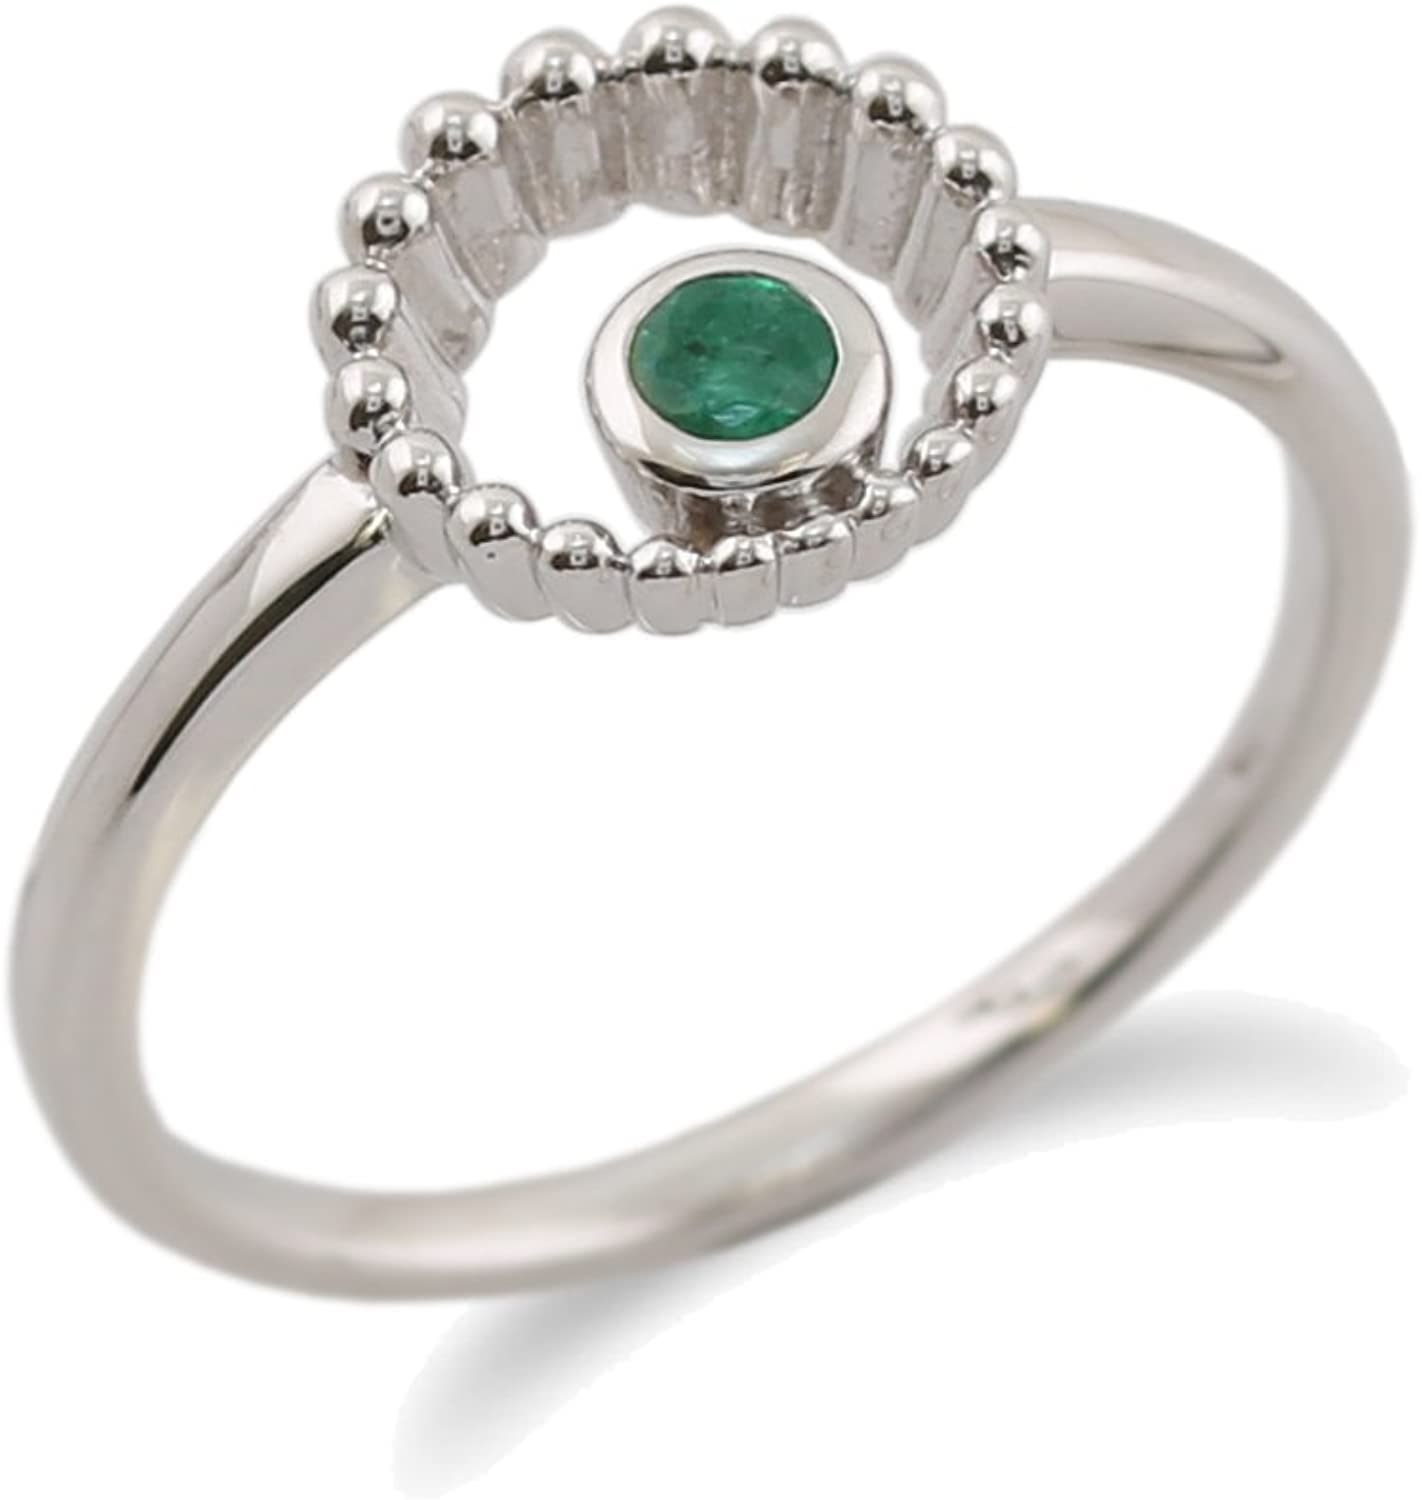 Gemondo Emerald Ring, 925 Sterling Silver 0.11ct Emerald Ring